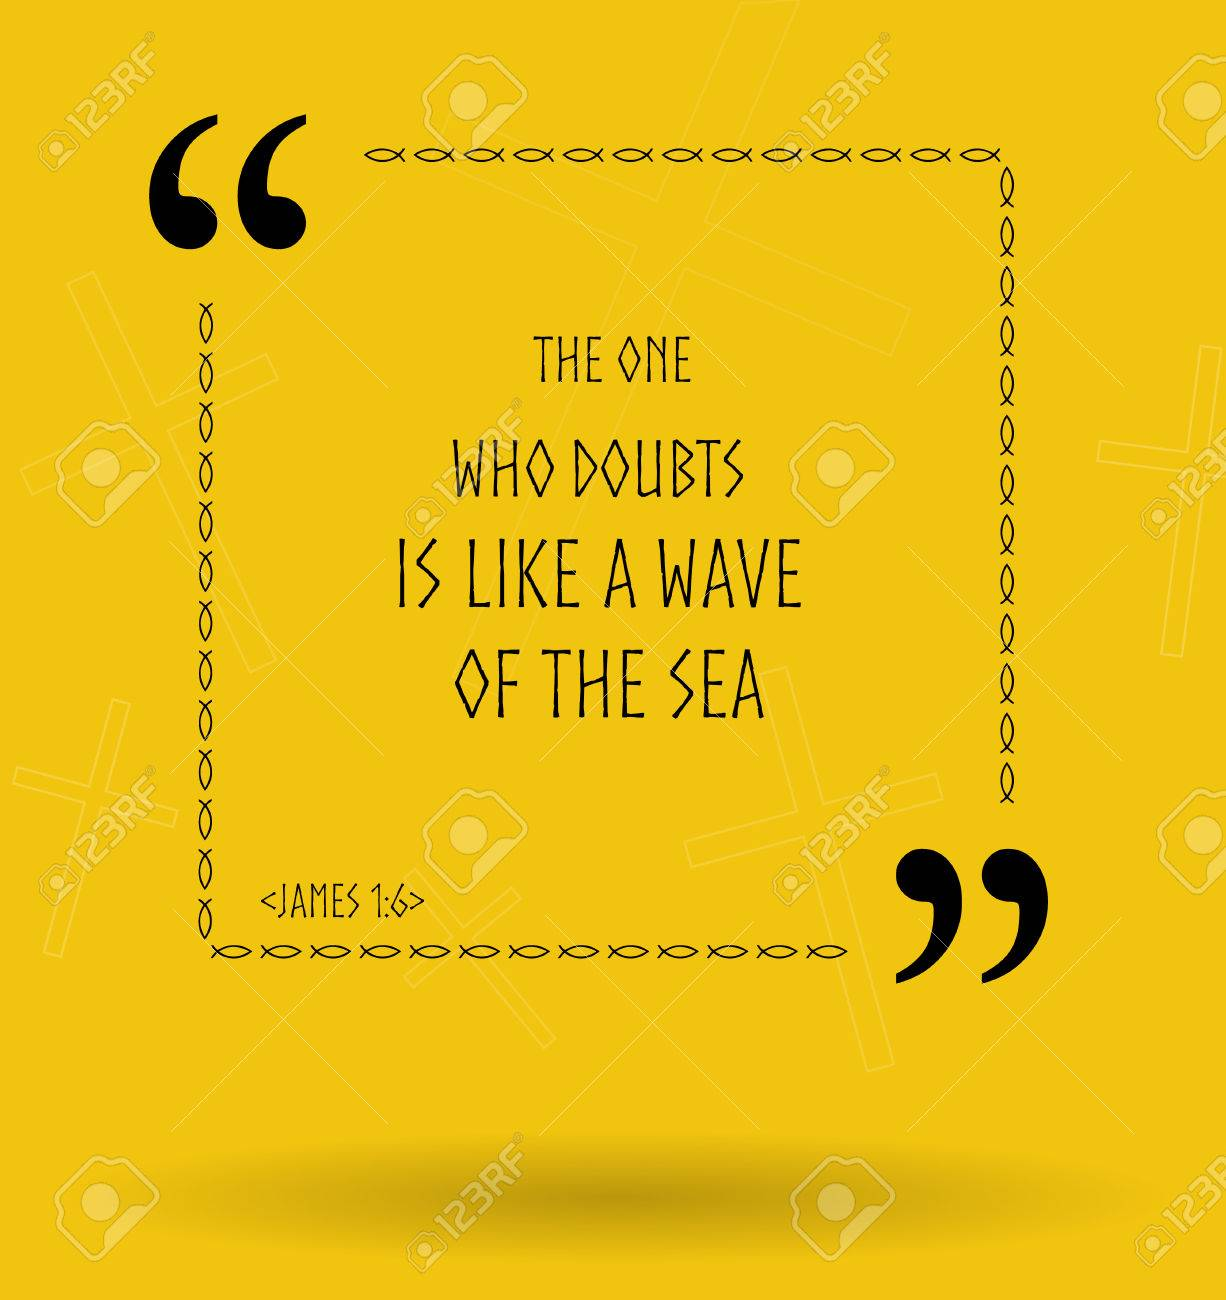 Best Bible Quotes About Doubts Christian Sayings About Doubts